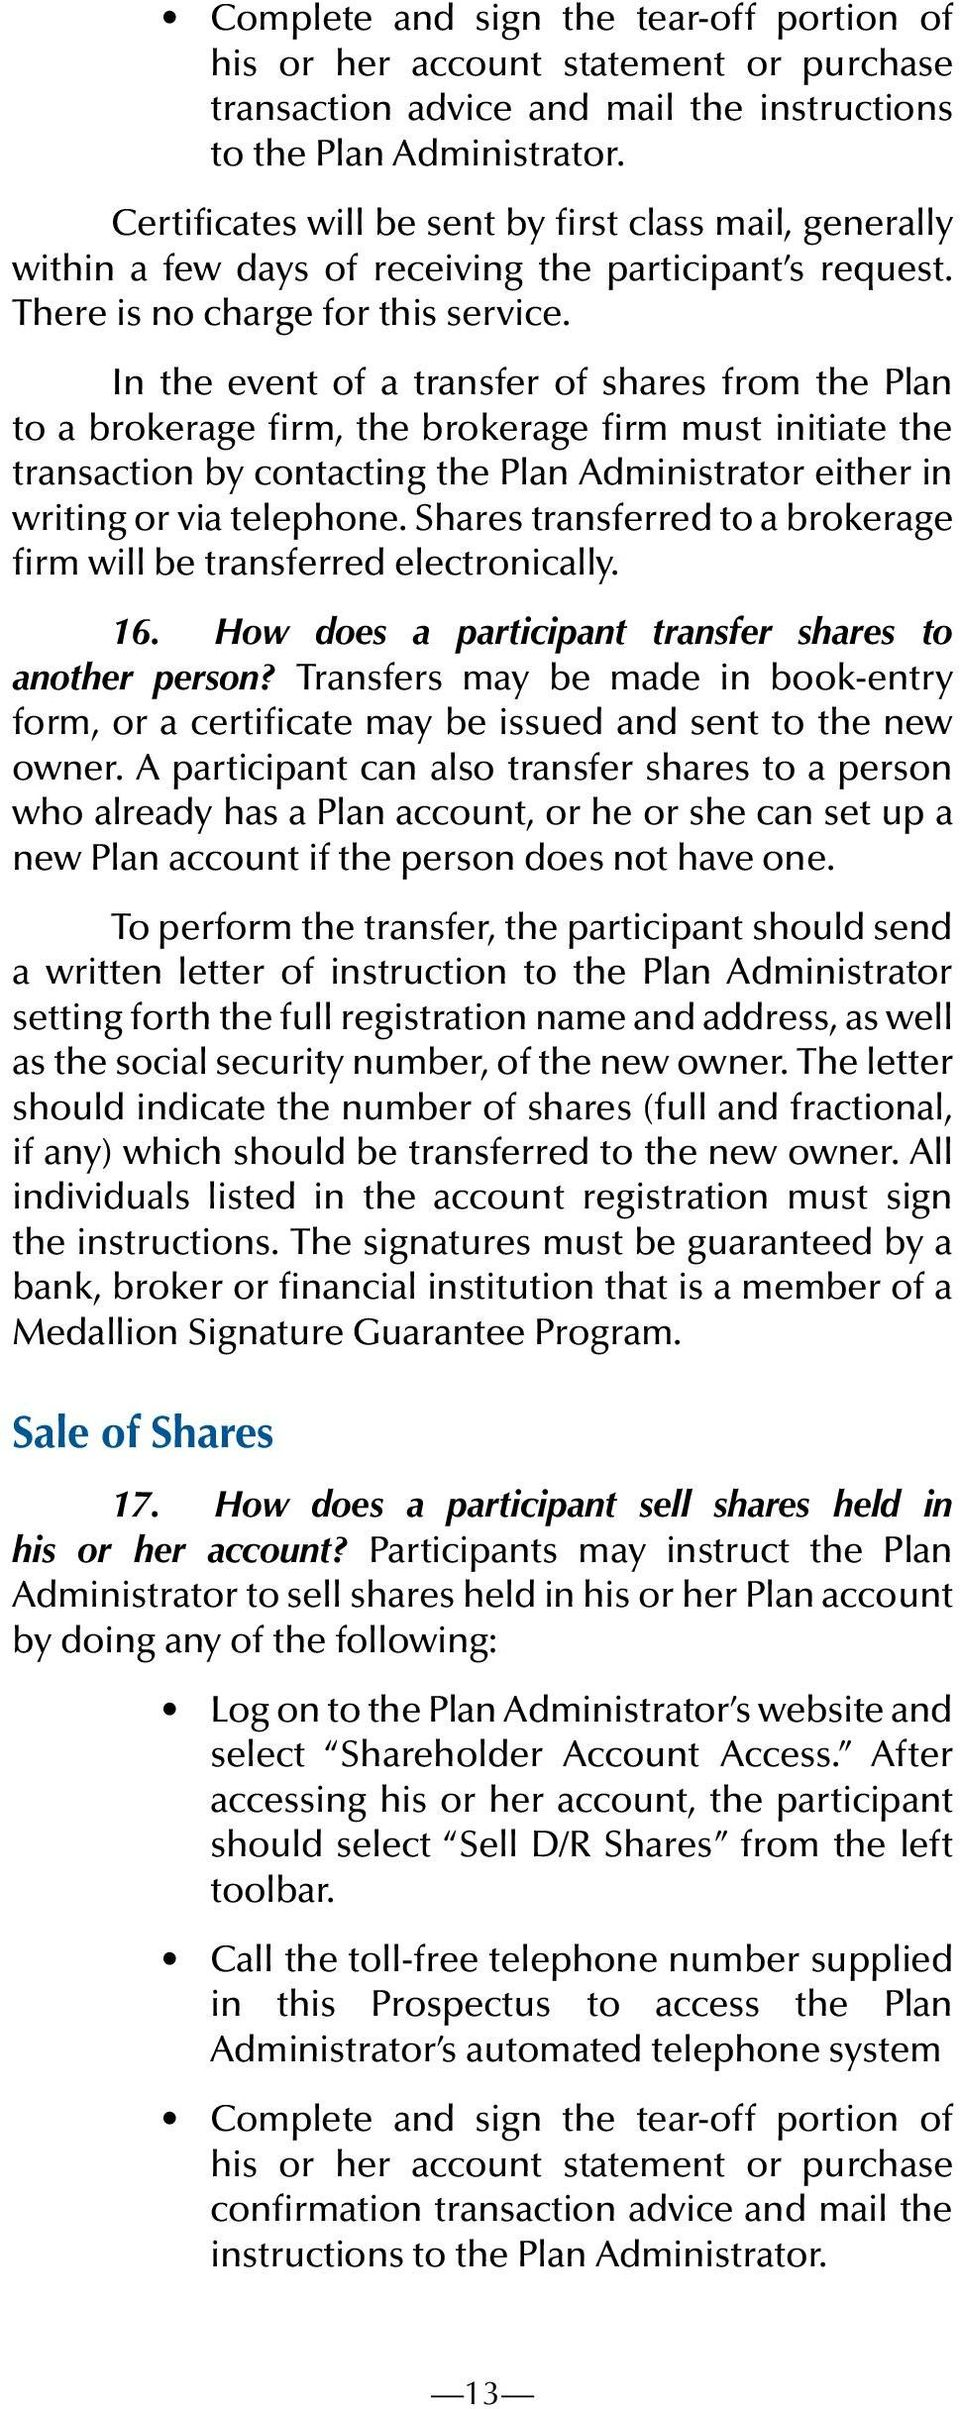 In the event of a transfer of shares from the Plan to a brokerage firm, the brokerage firm must initiate the transaction by contacting the Plan Administrator either in writing or via telephone.